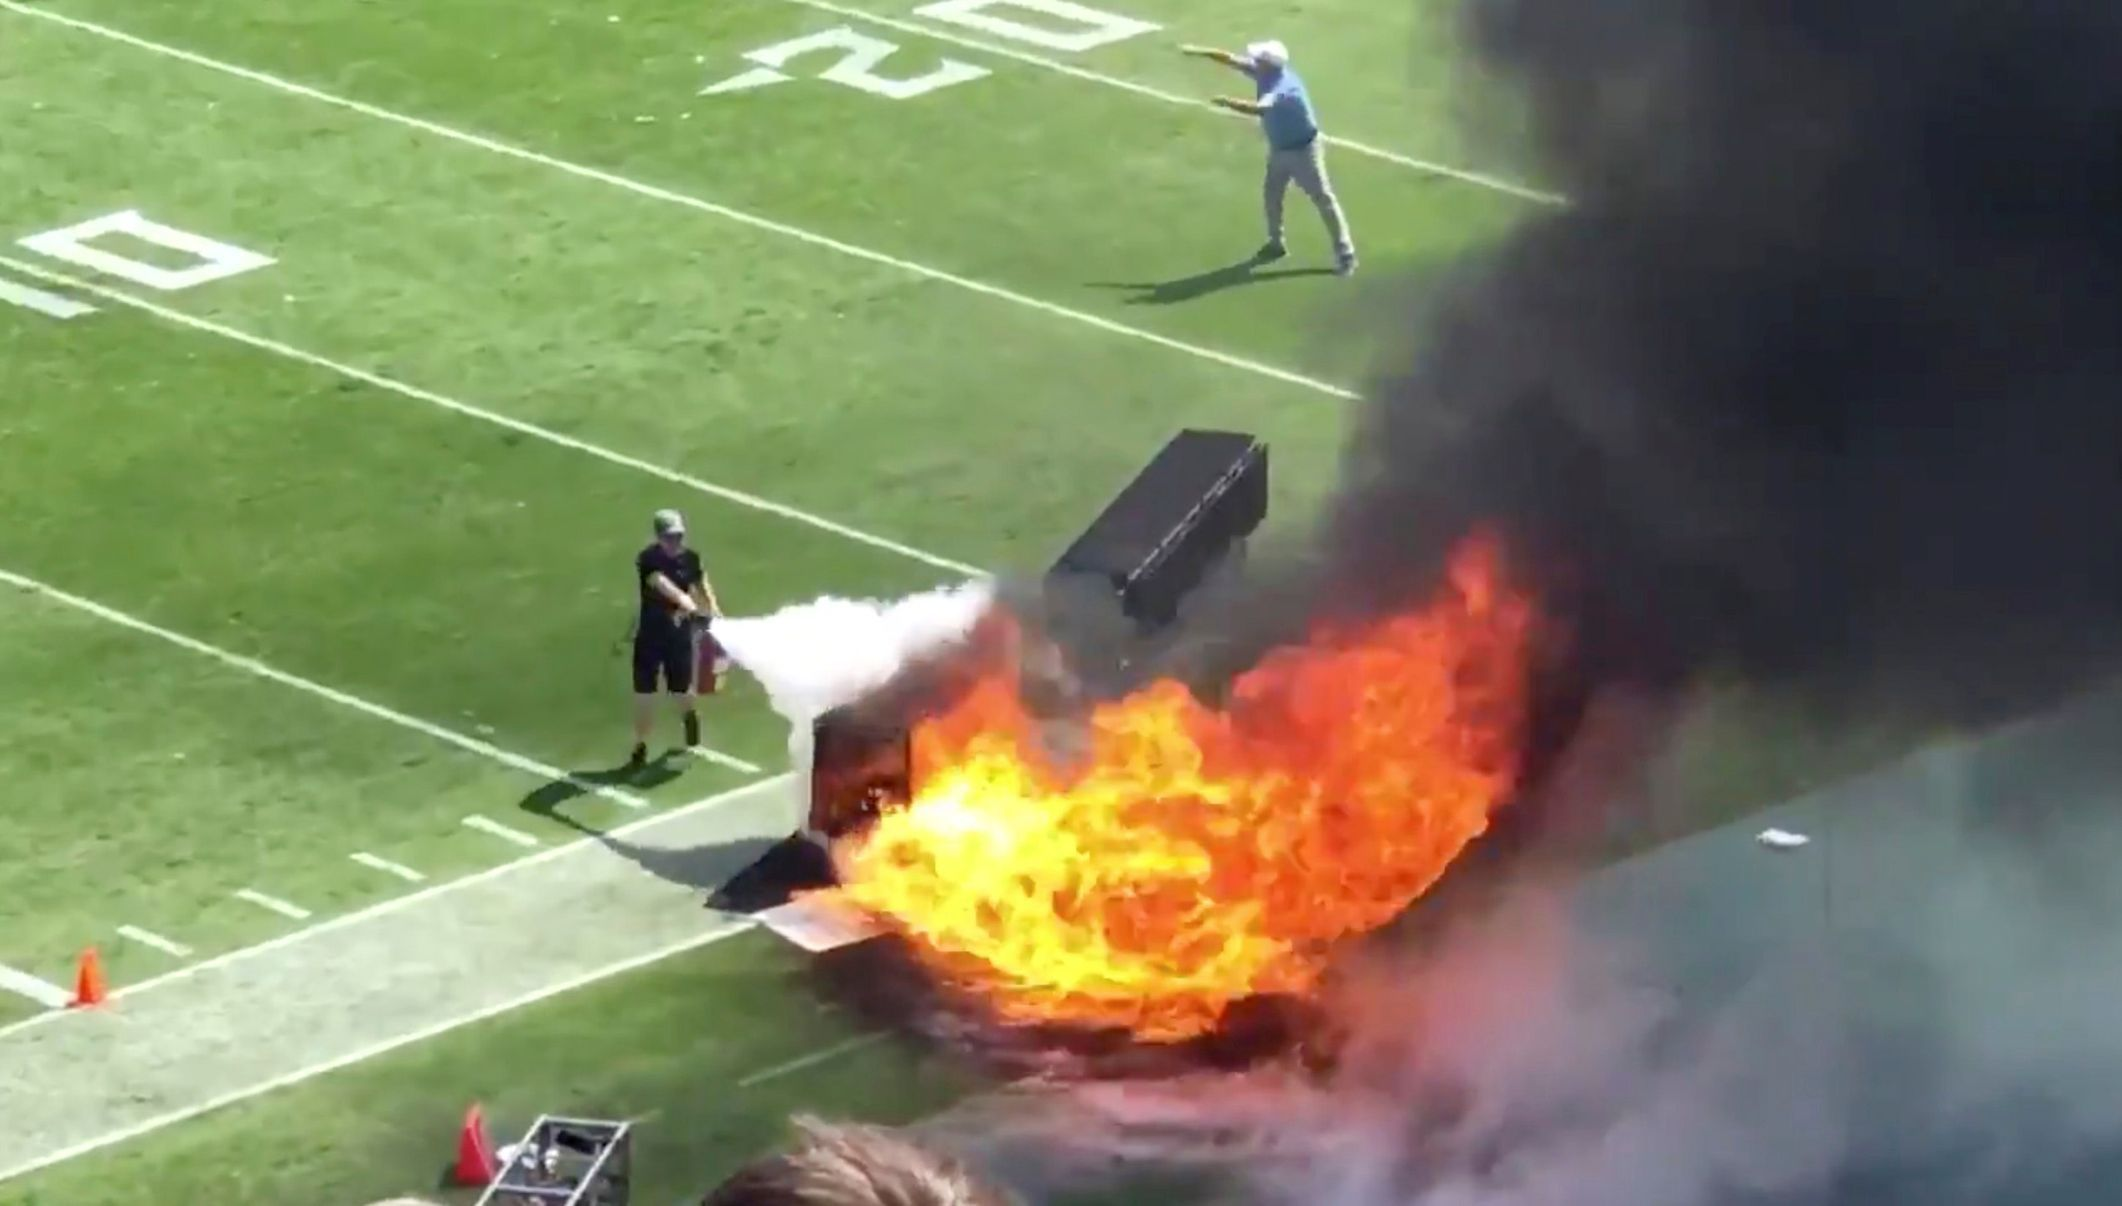 People try and extinguish fire from burning equipment used during pregame, du